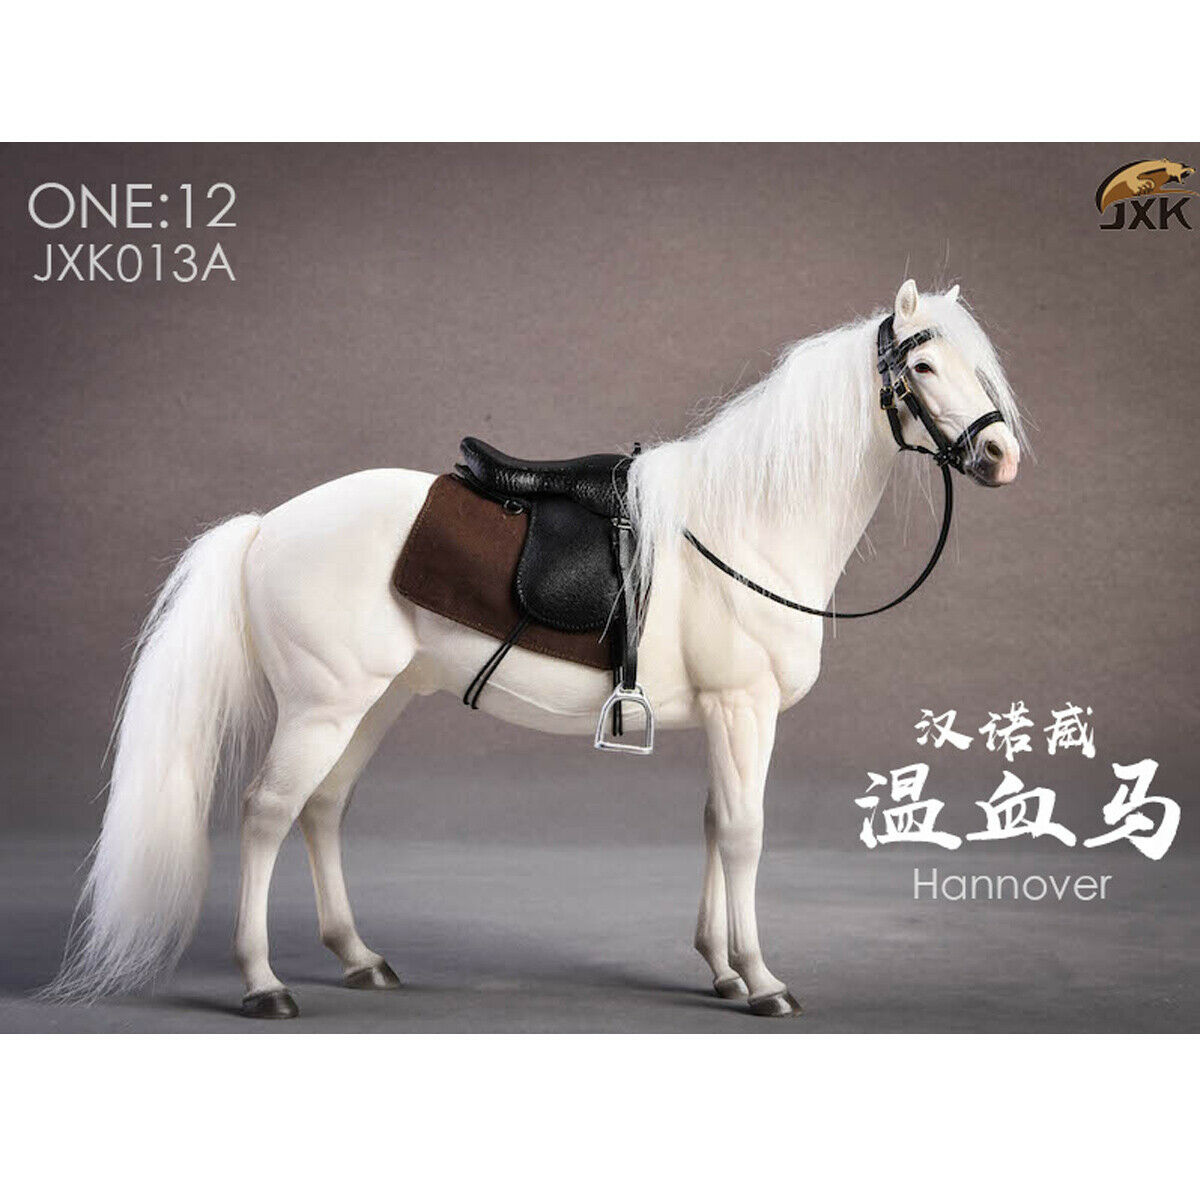 JXK Studio JXK013A 1 12 Scale Germany Hannover Animal Hanoverian Horse Model